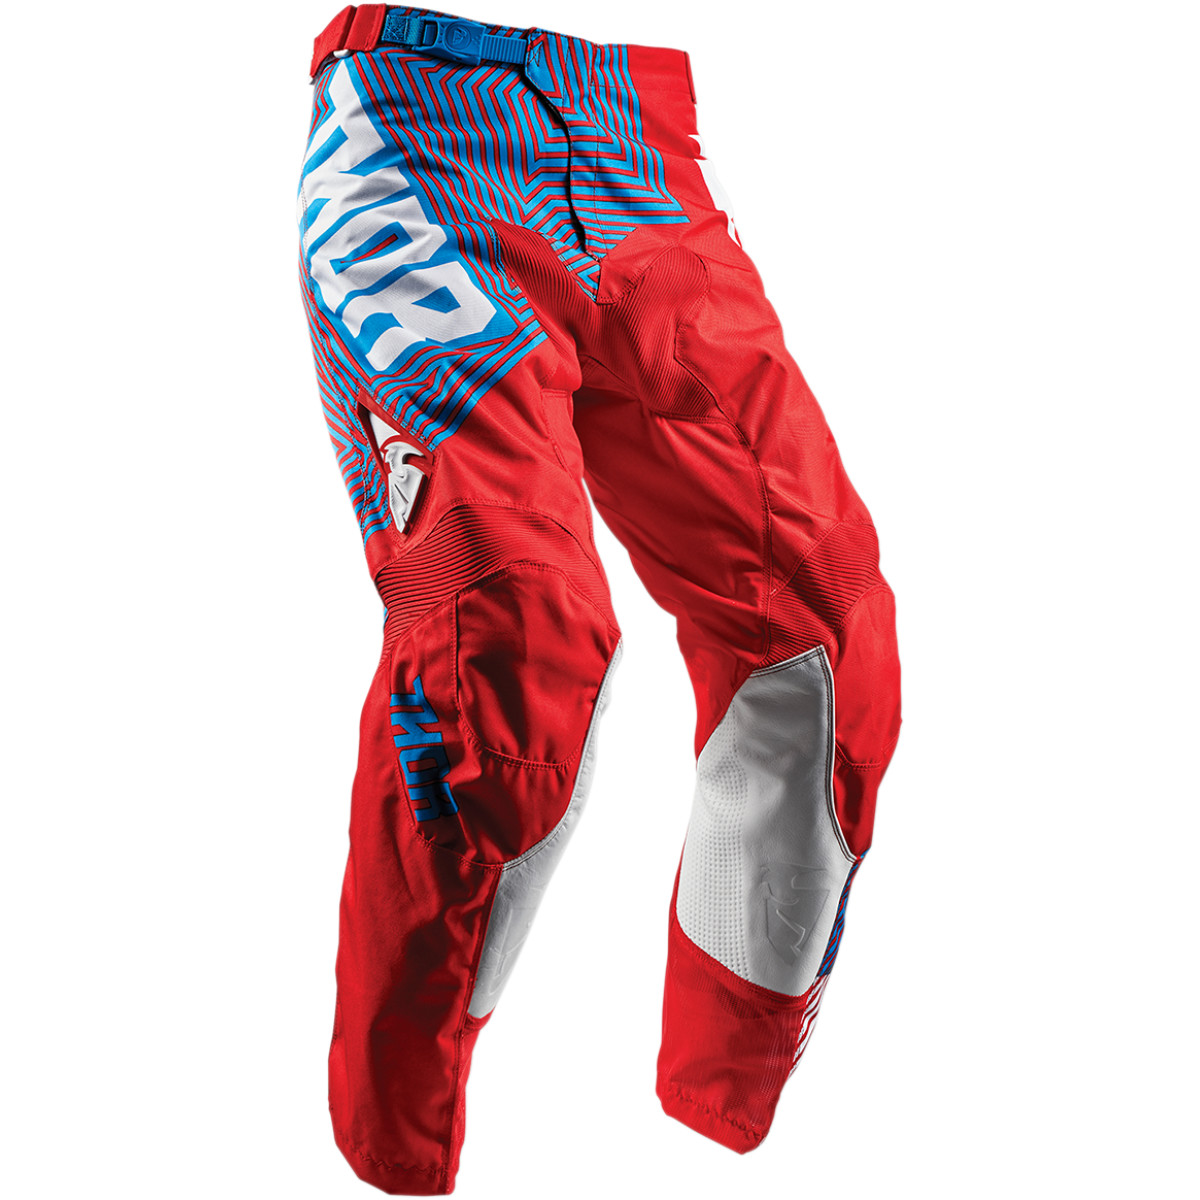 Pantalon Motocross Adulte Thor Pulse Geotec Rouge Bleu